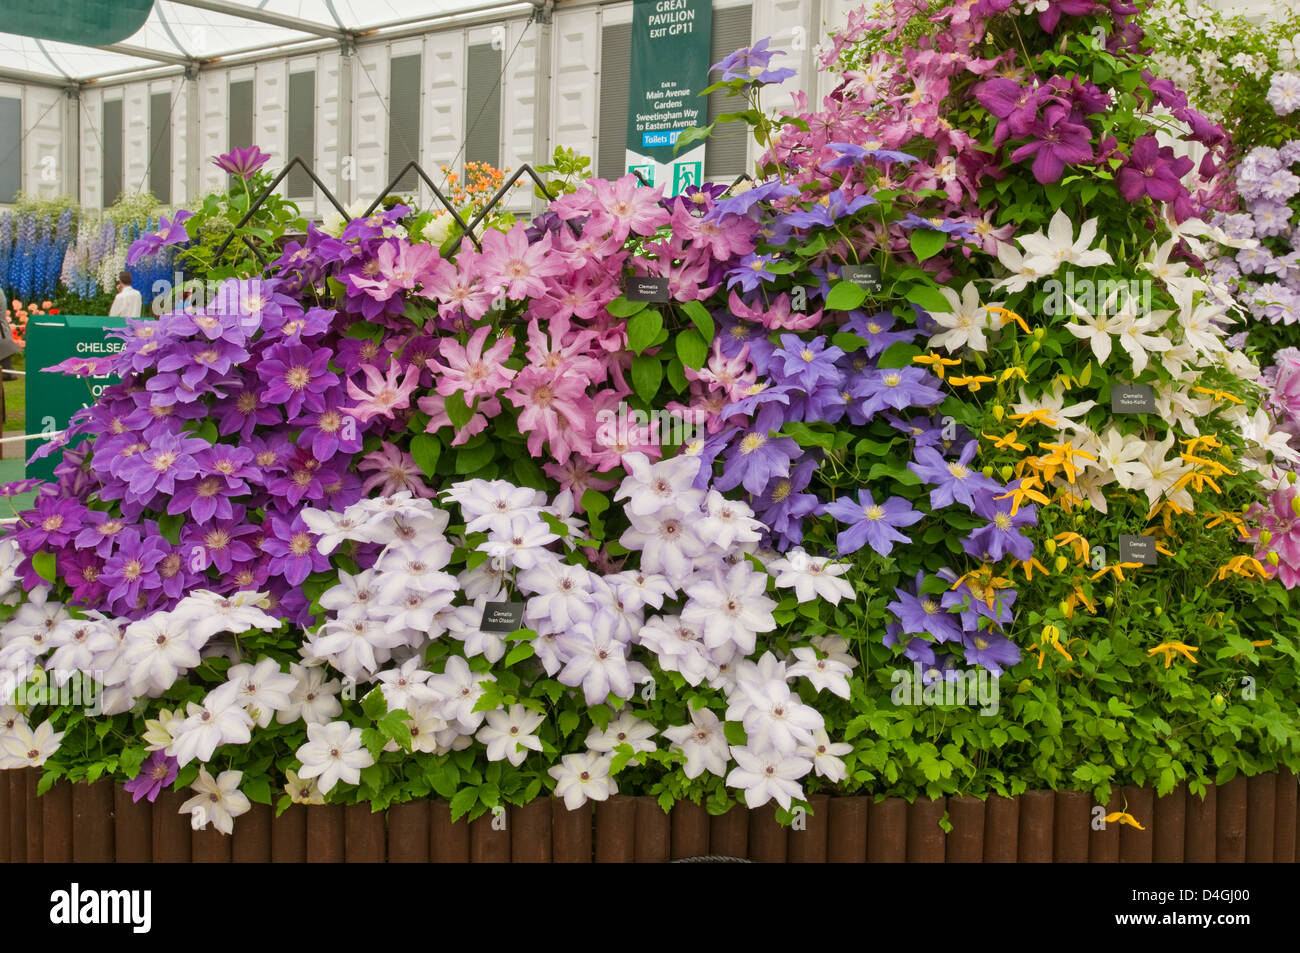 Clematis display by Thorncroft Clematis Nursery at Chelsea RHS show 2010. Gold Medal winner, please credit Thorncroft. - Stock Image